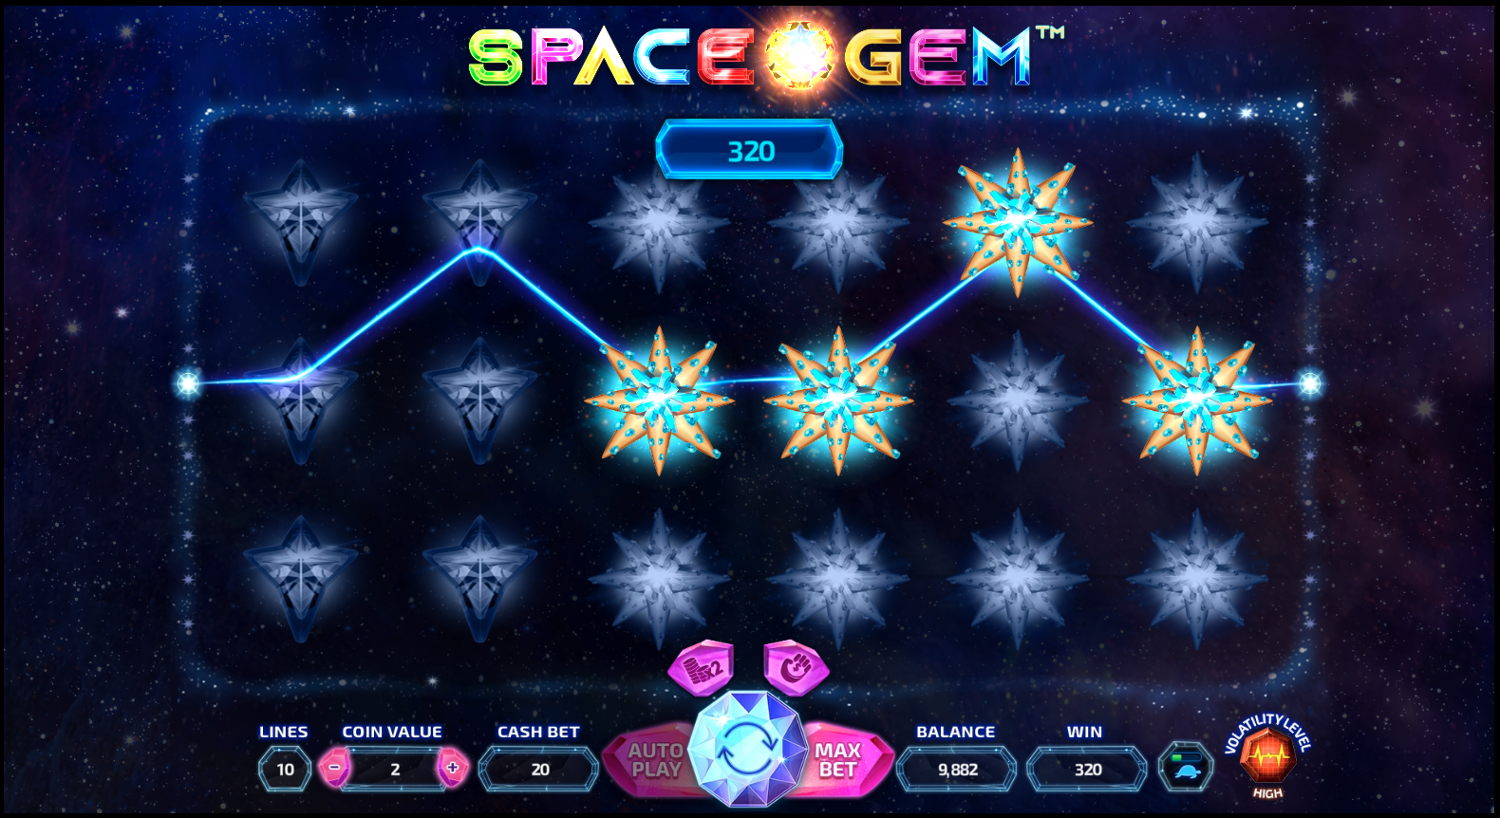 Space Gem right-to-left win